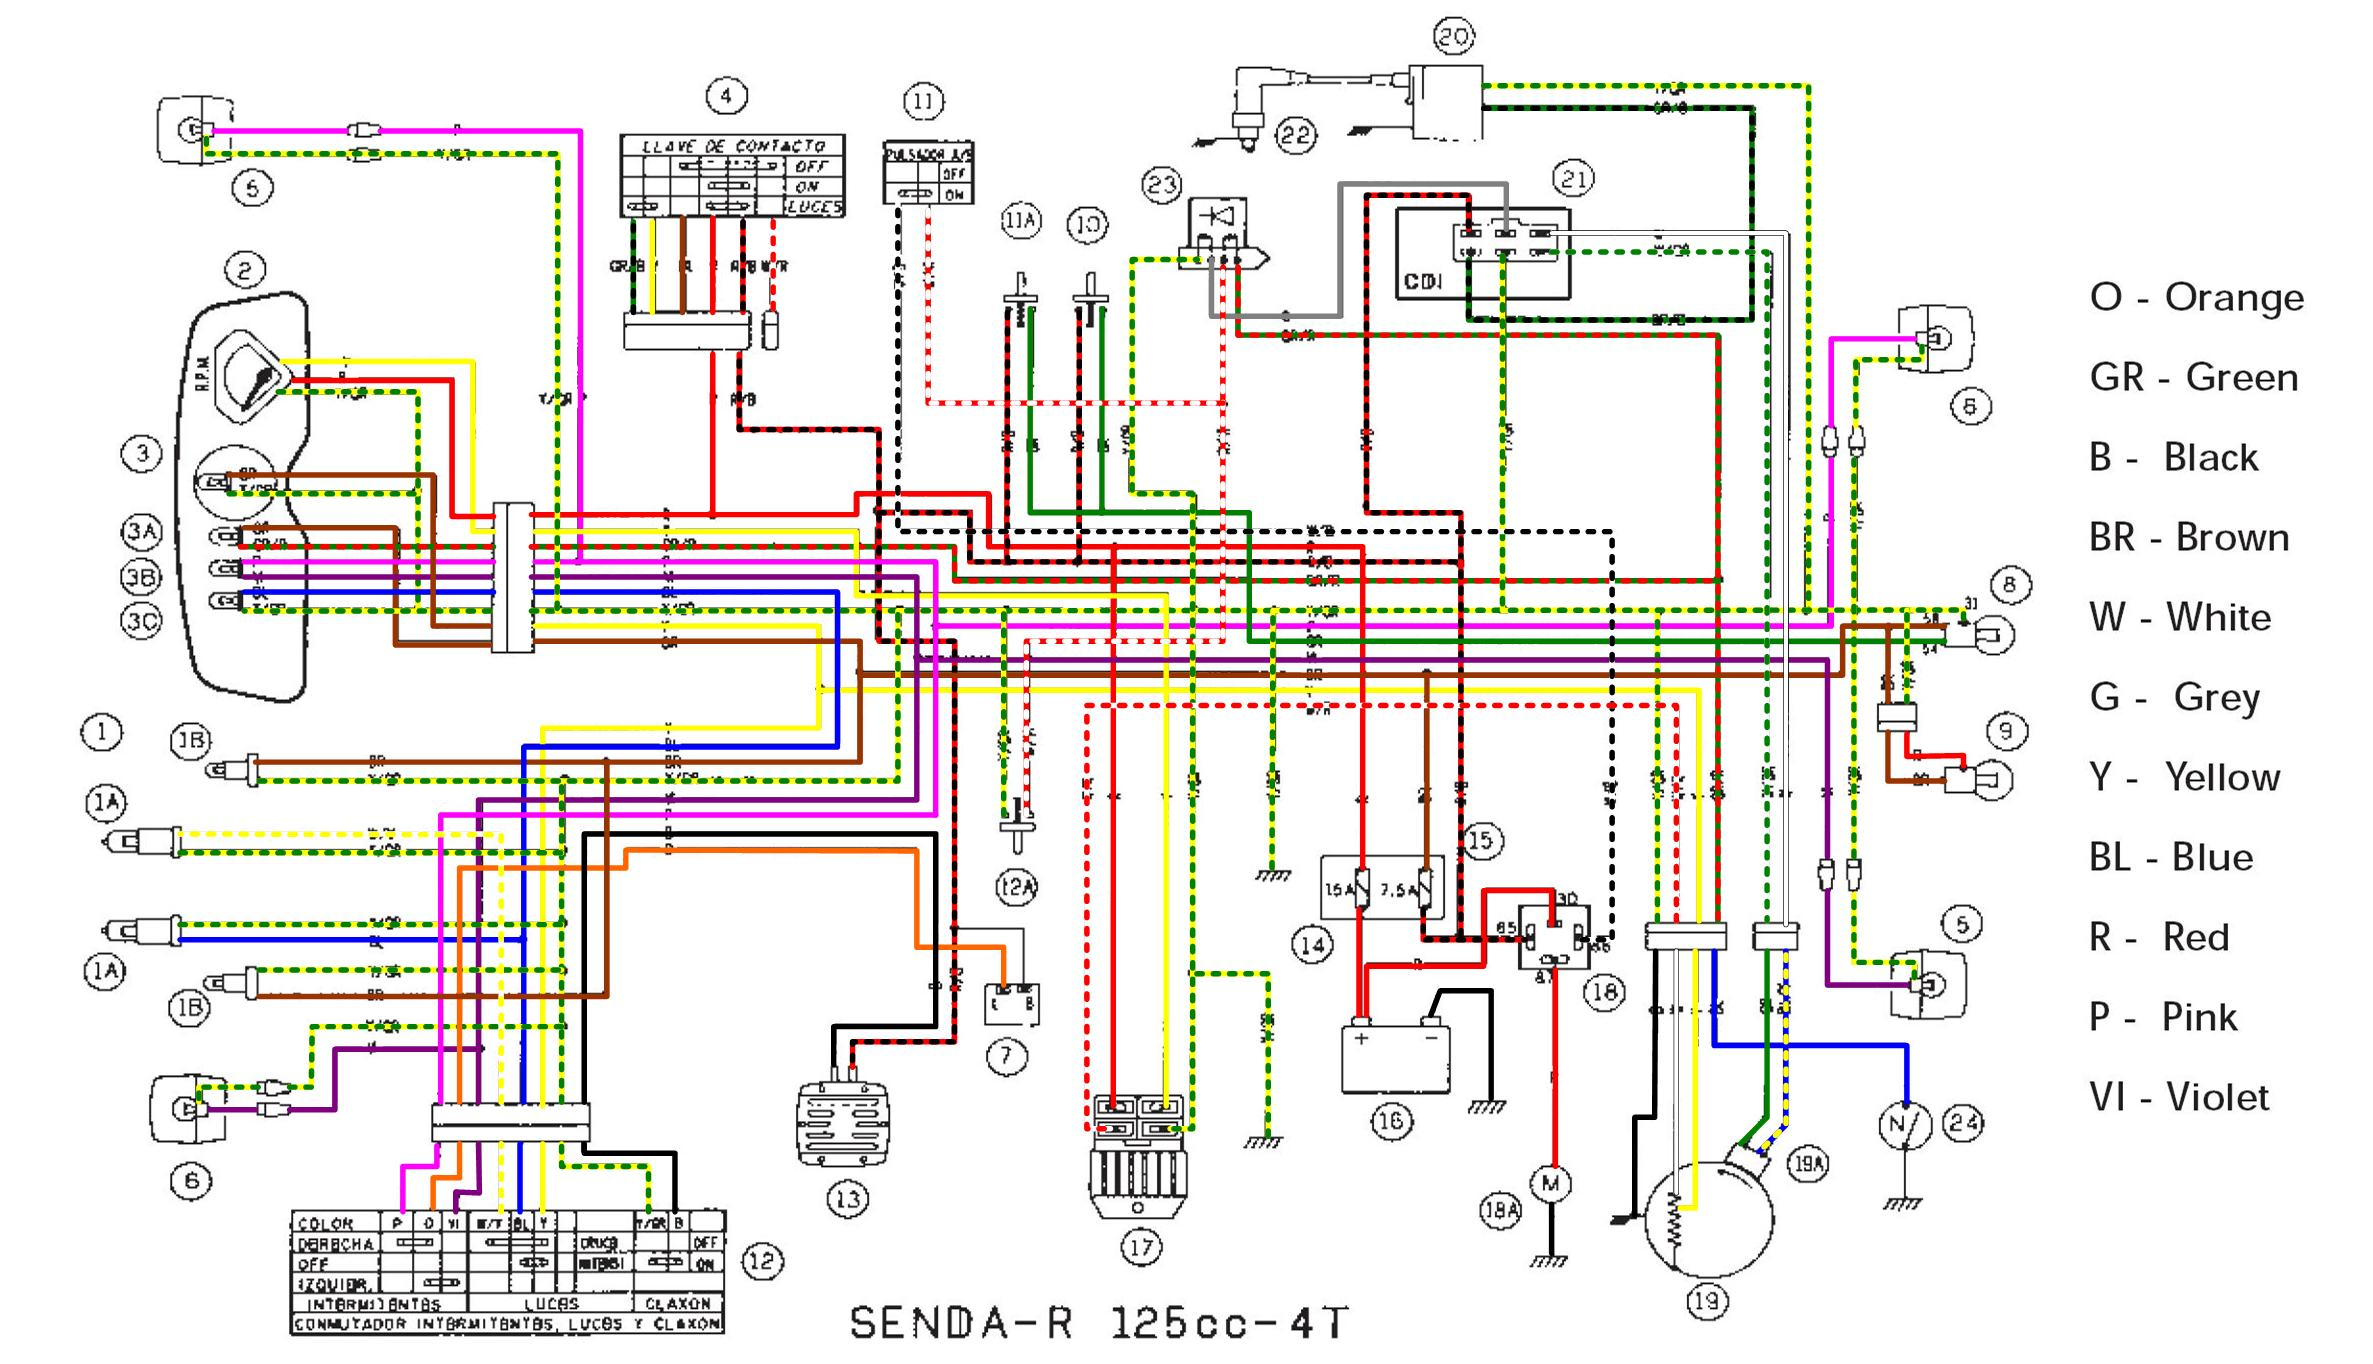 Cb750 Four Cafe Racer likewise Simple Motorcycle Wiring Diagram For Choppers And Cafe Racers as well Honda Cb550 Cafe Racers in addition Benelli 250 Wiring Diagram besides Repair And Service Manuals. on honda cb750 engine diagram